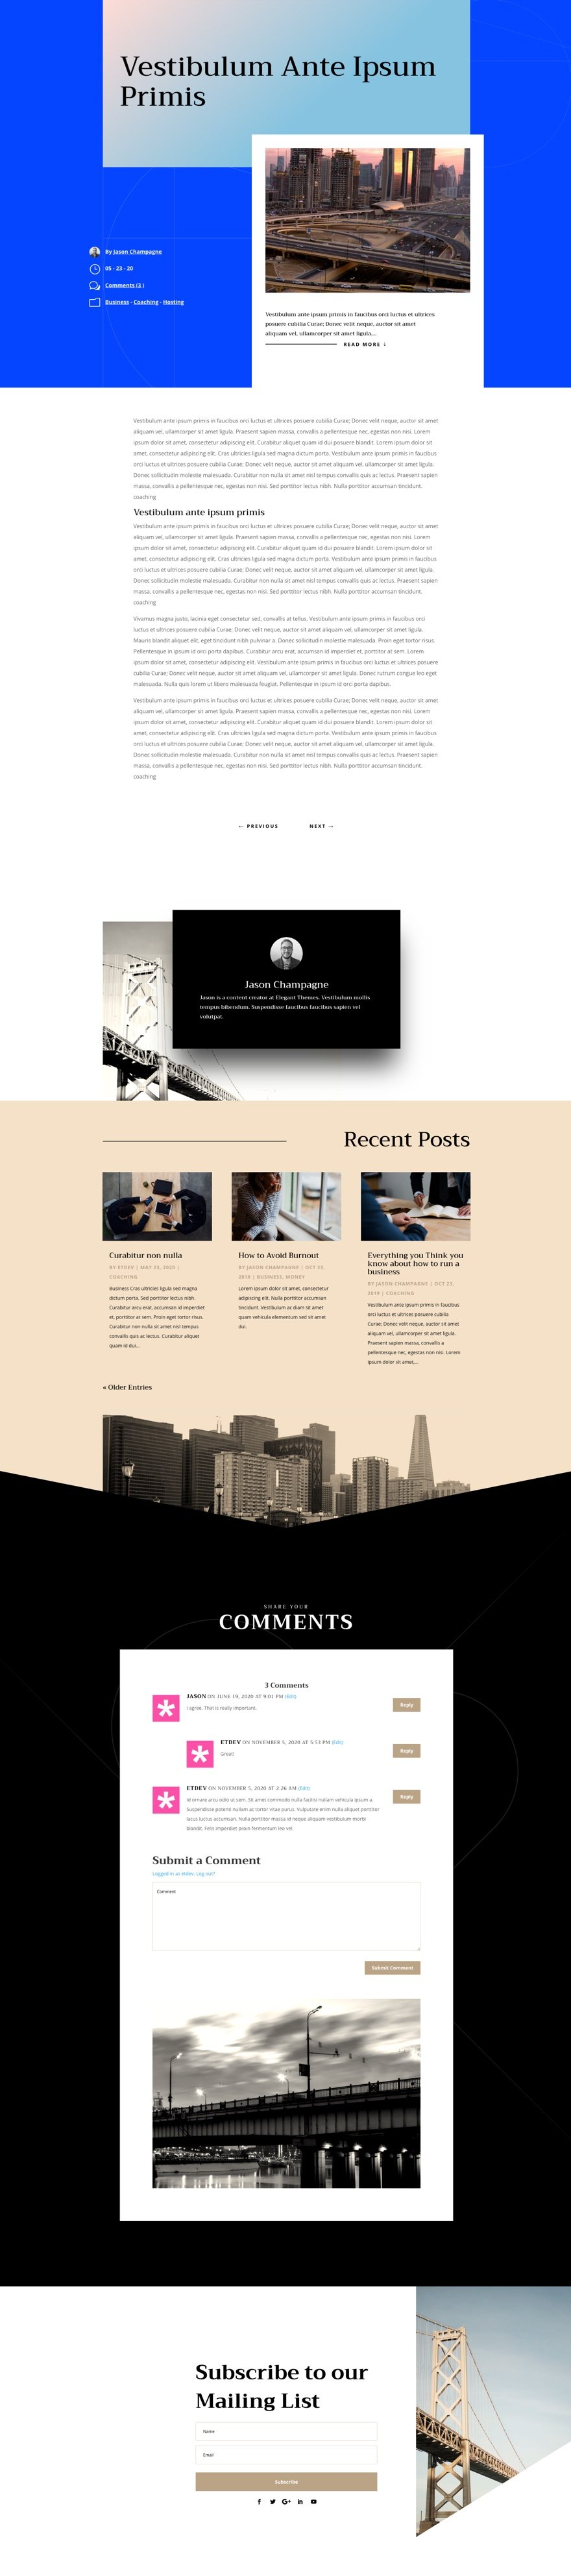 download-a-free-blog-post-template-for-divis-engineering-firm-layout-pack Download a FREE Blog Post Template for Divi's Engineering Firm Layout Pack